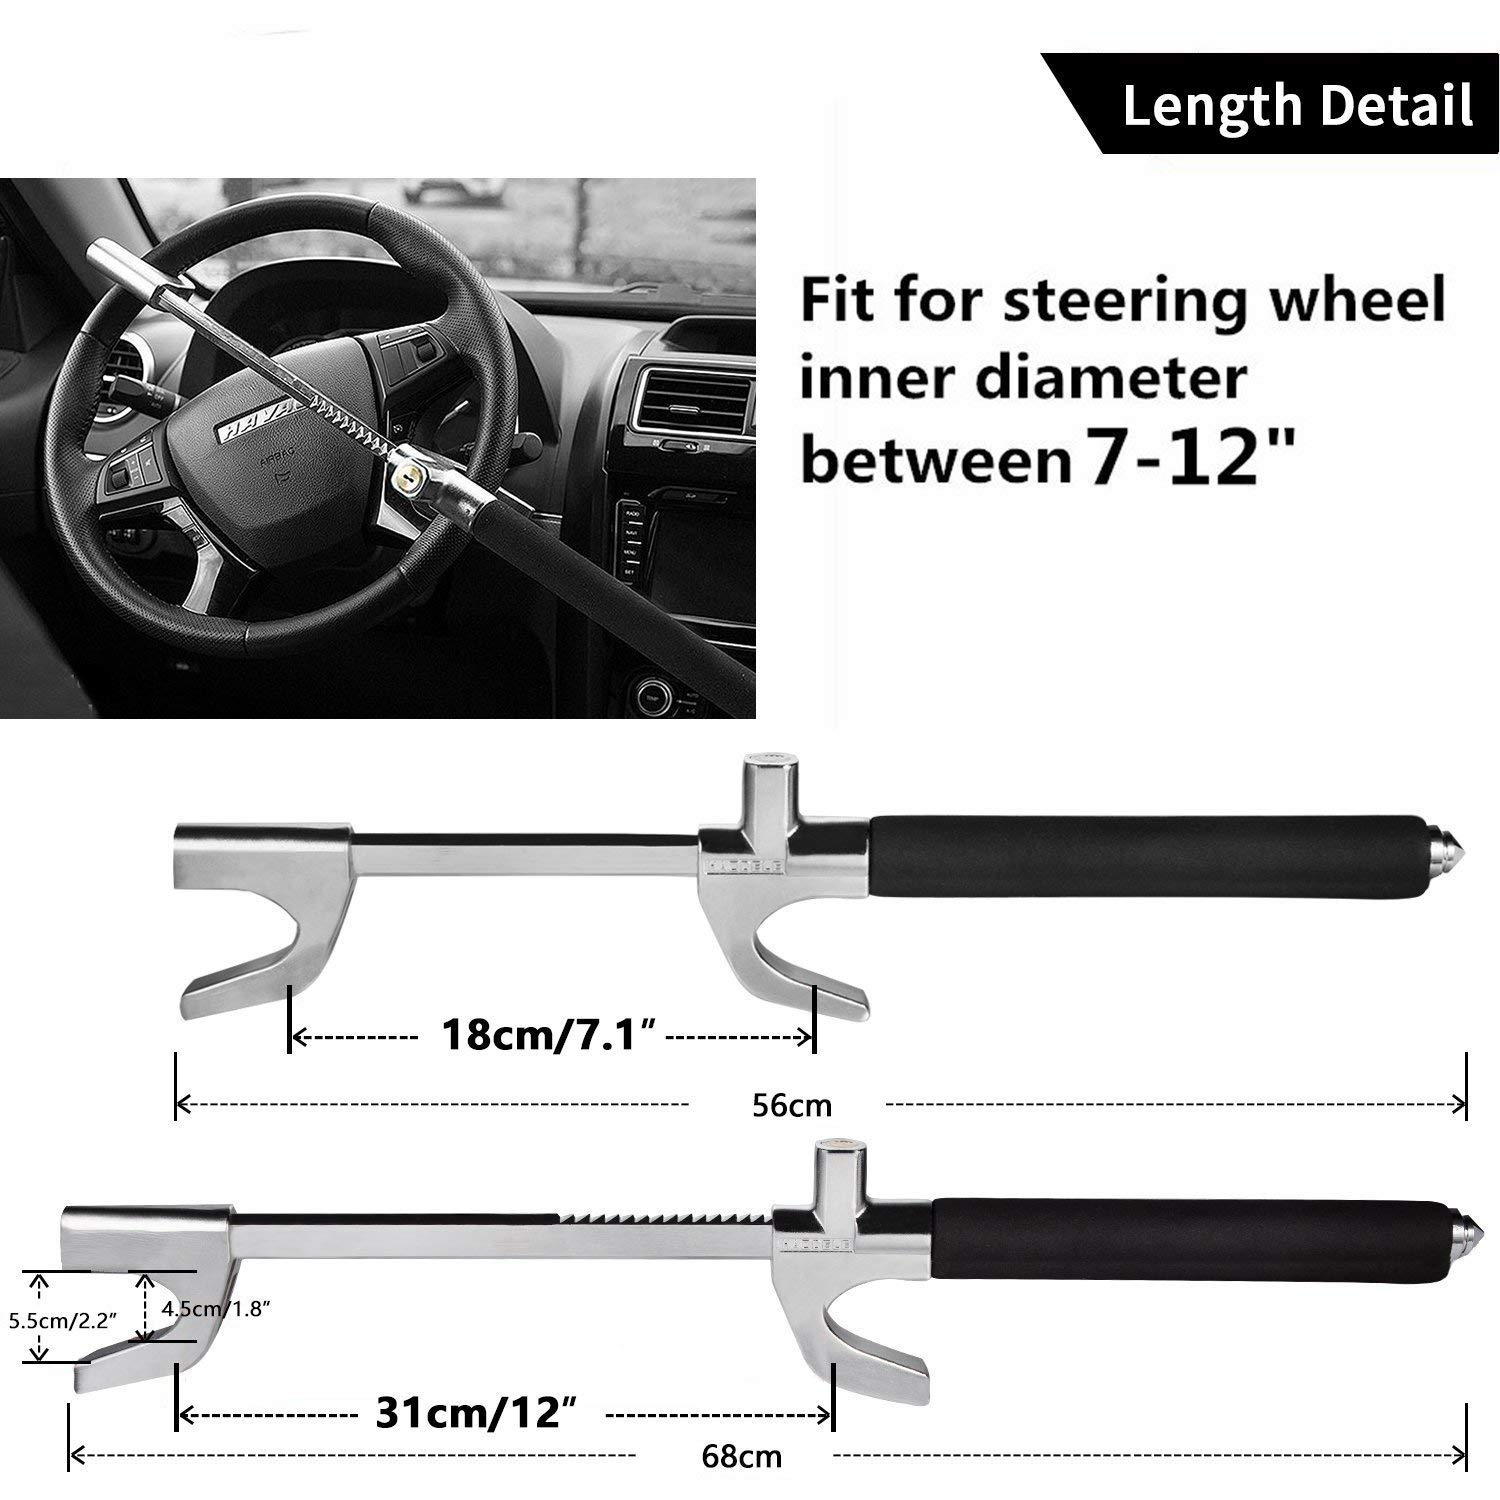 Steering Wheel Lock Universal Anti-Theft Clamp Heavy Duty Vehicle Safety Rotary Adjustable Lock Self-Defense with 3 Keys Black HAODELE